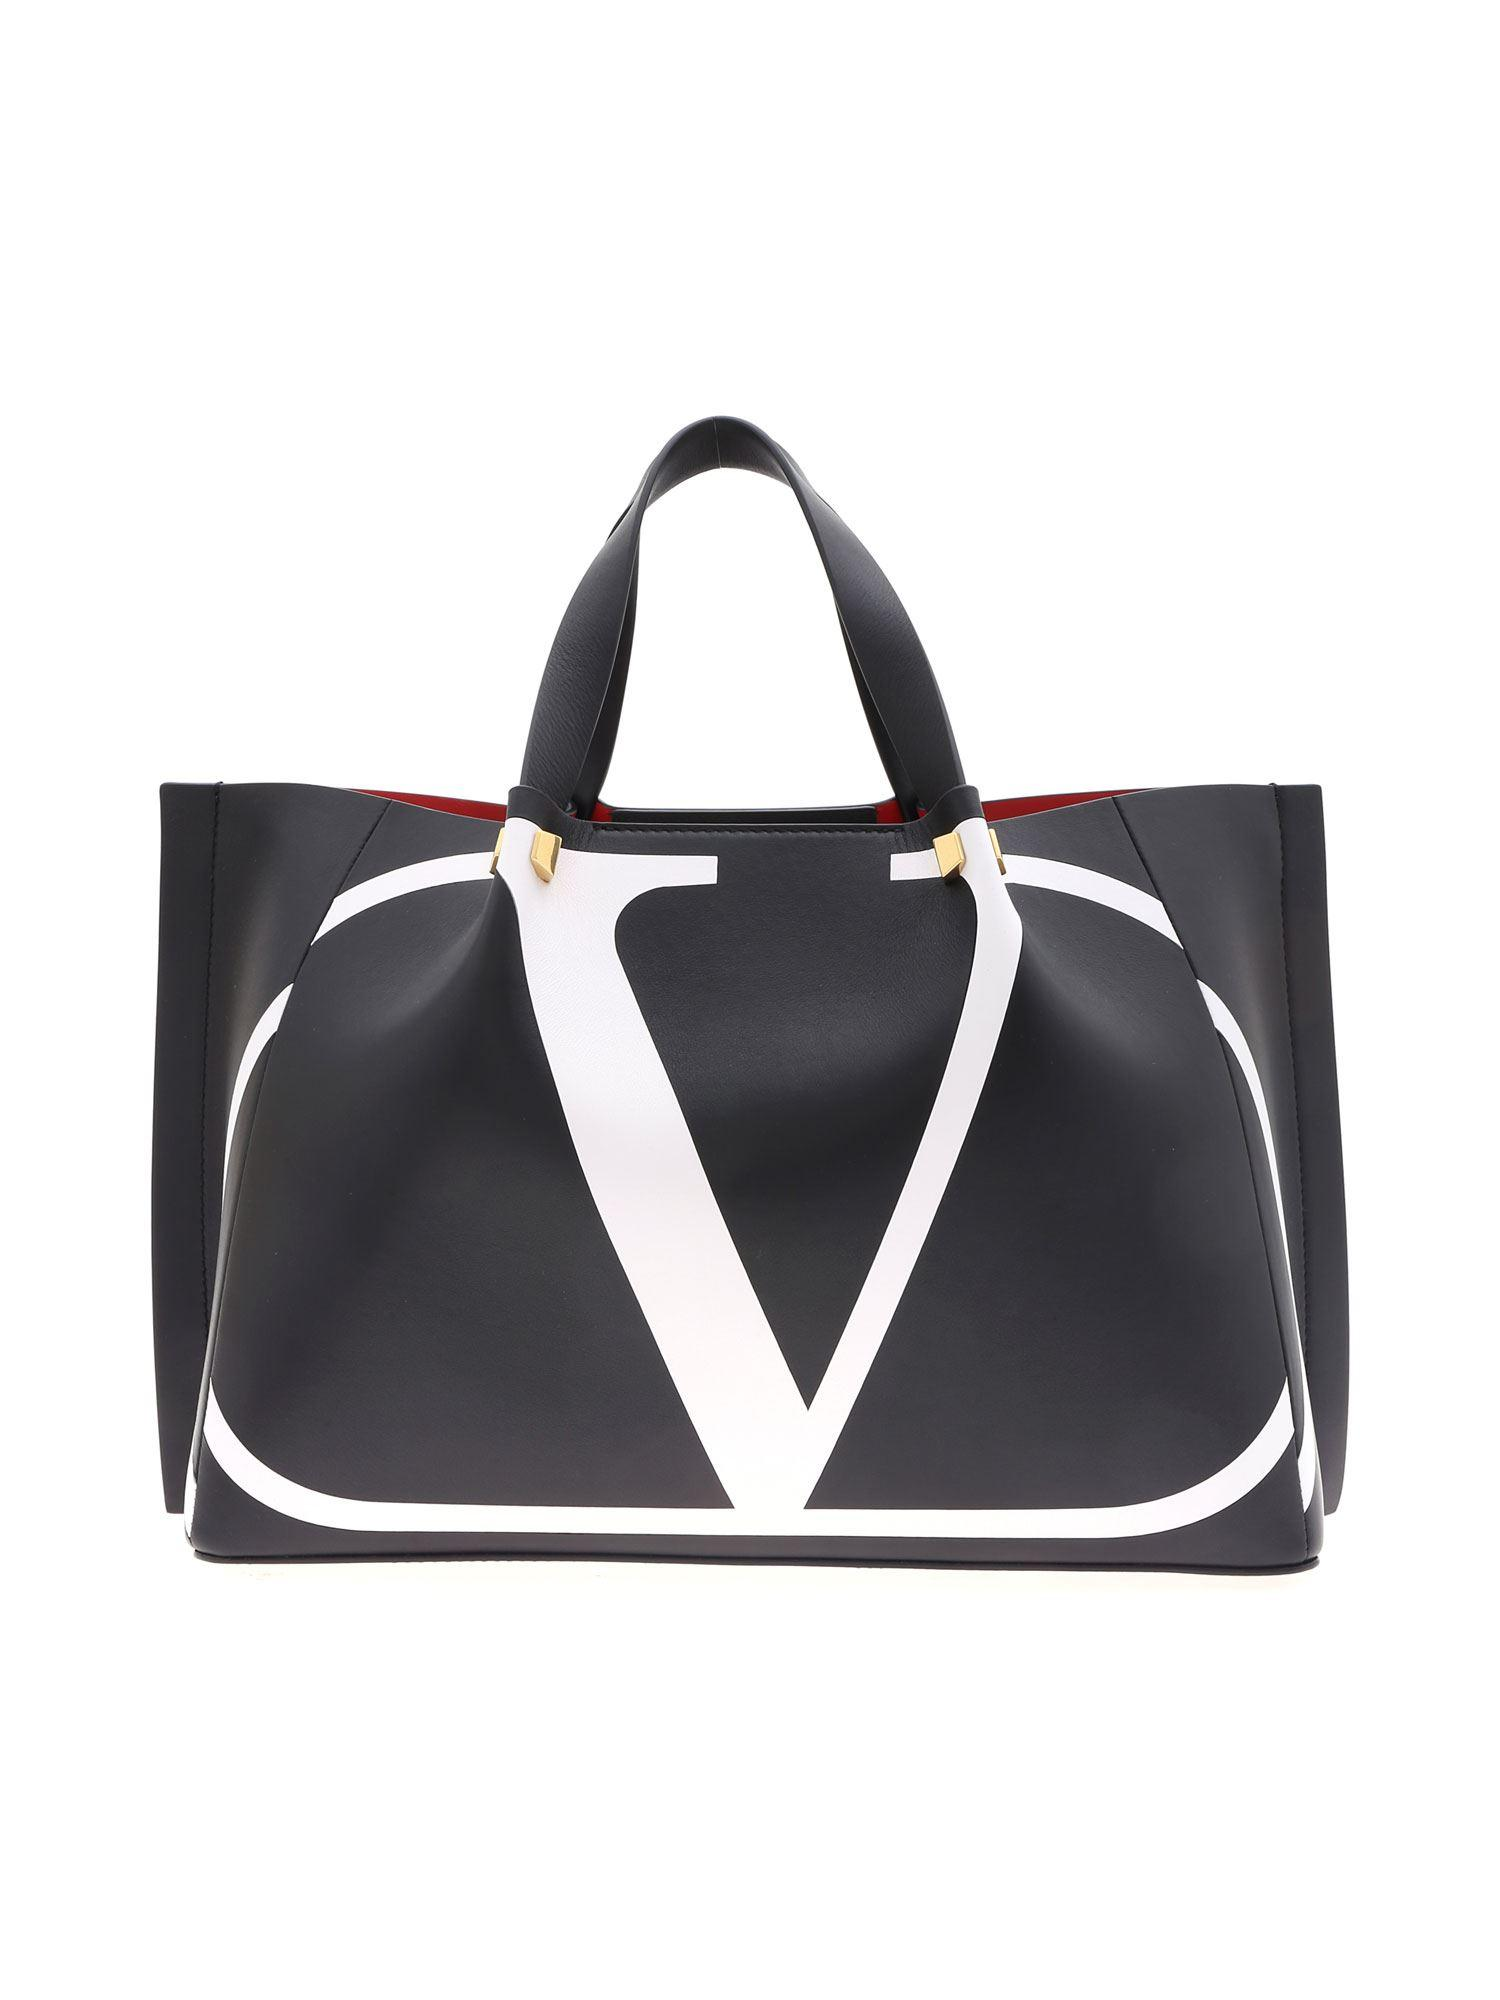 e94532ec645 Valentino Go Logo Escape Medium Handbag In Black in Black - Lyst